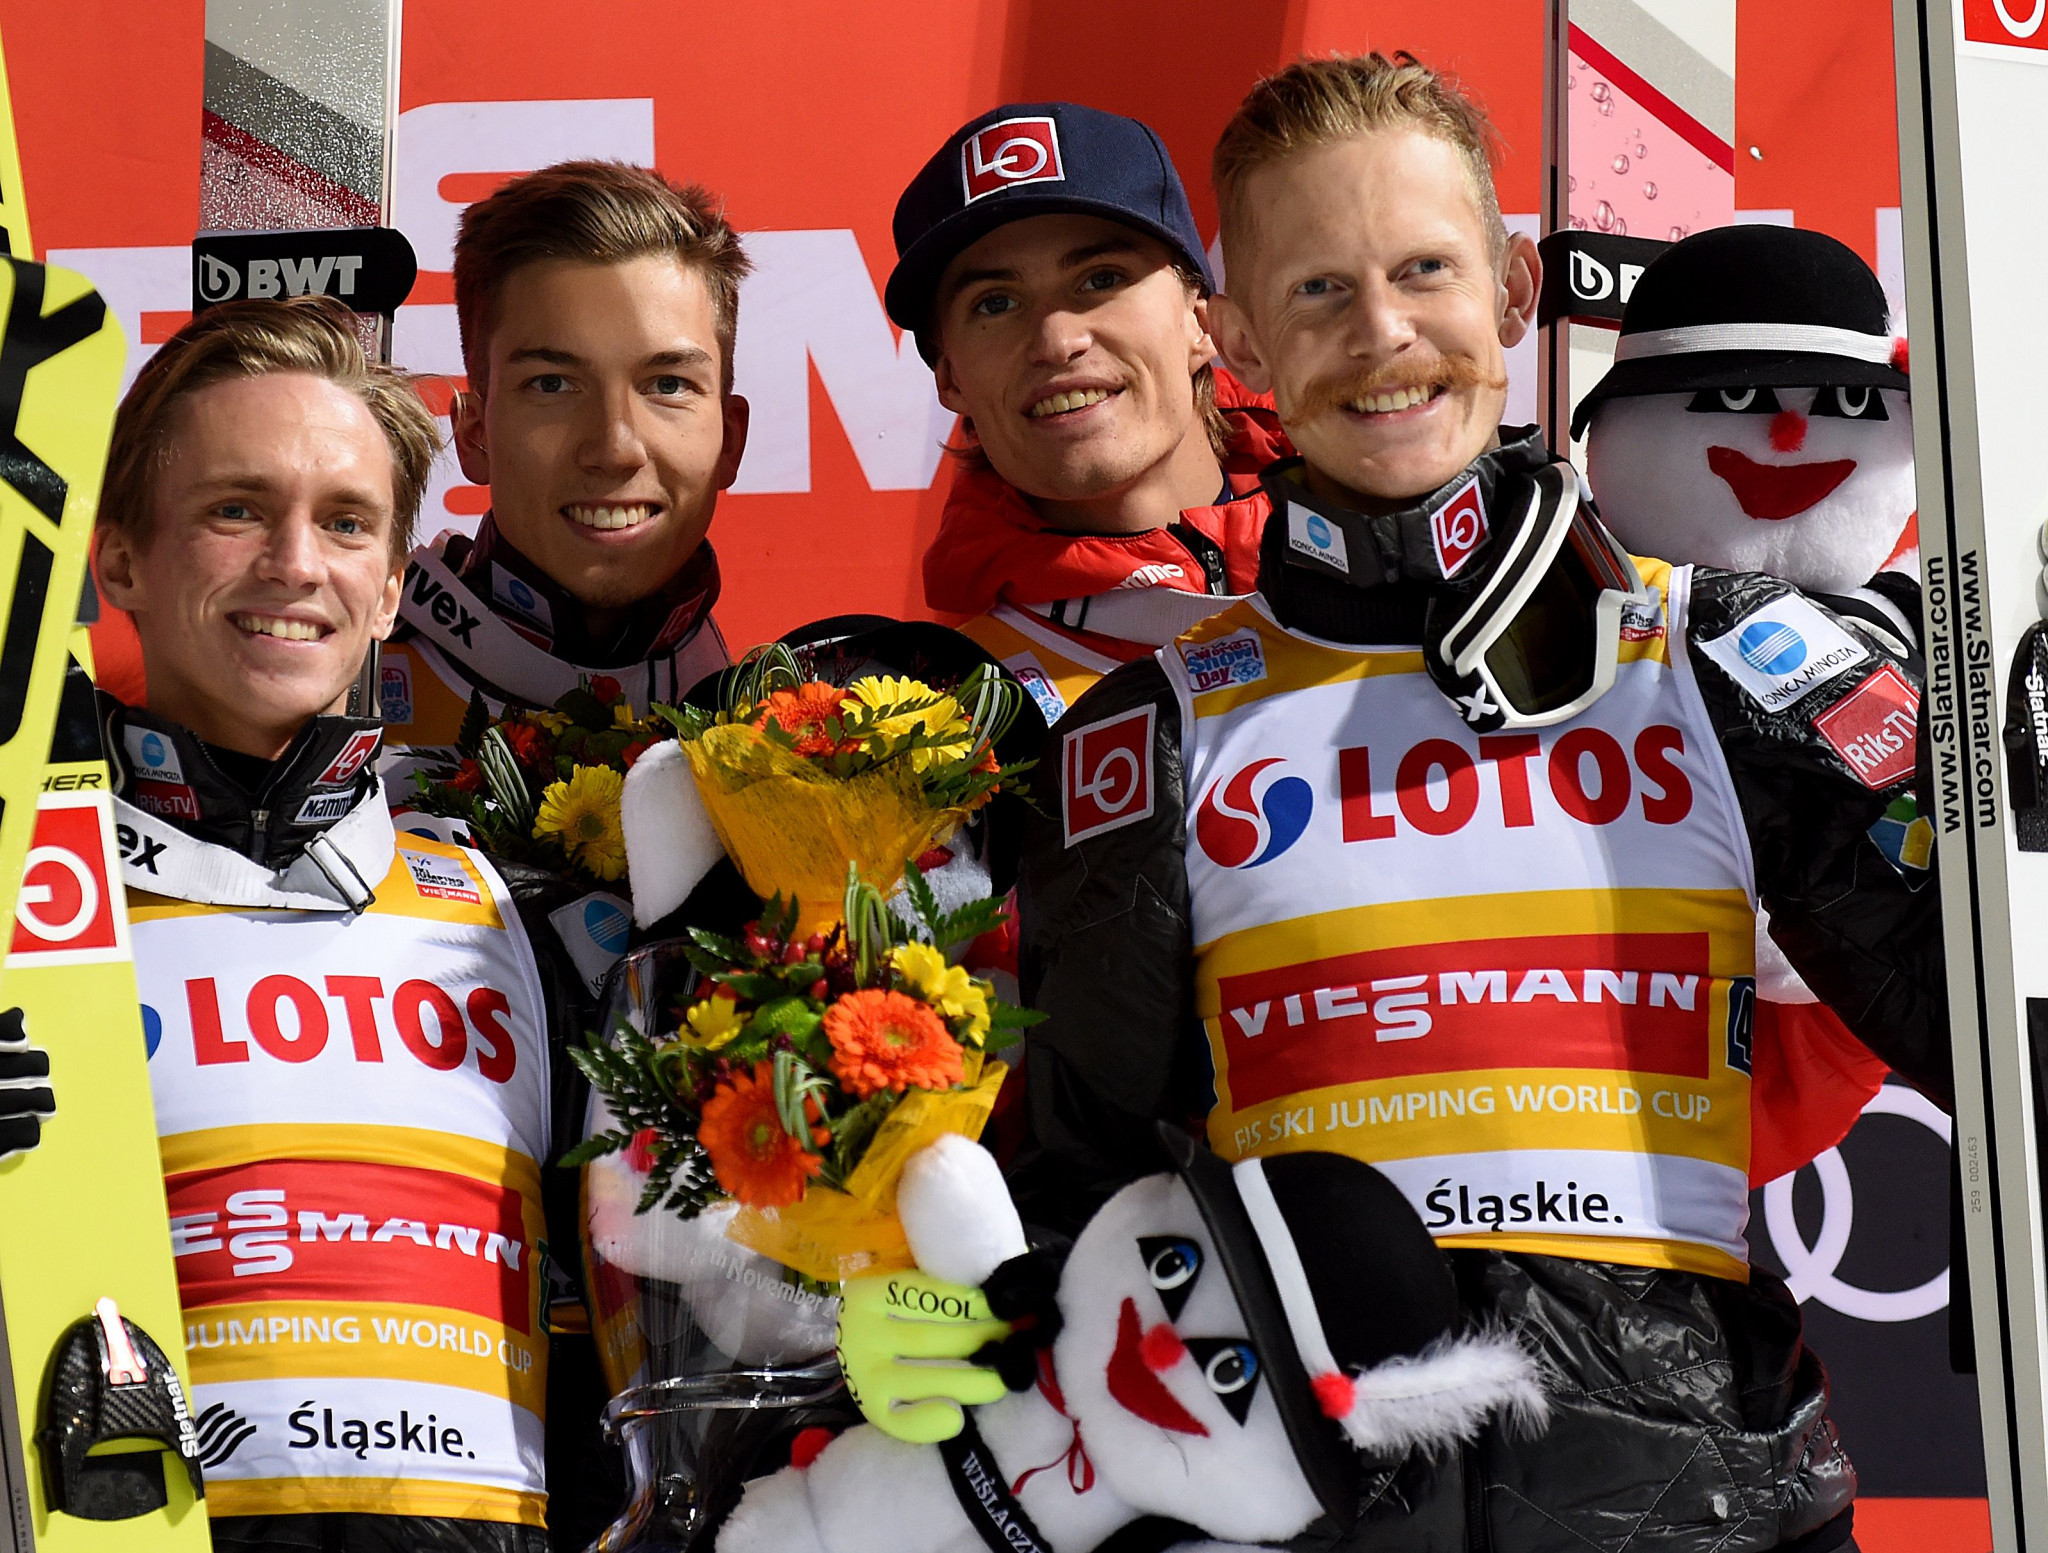 Norway win second team event of FIS Ski Jumping World Cup season